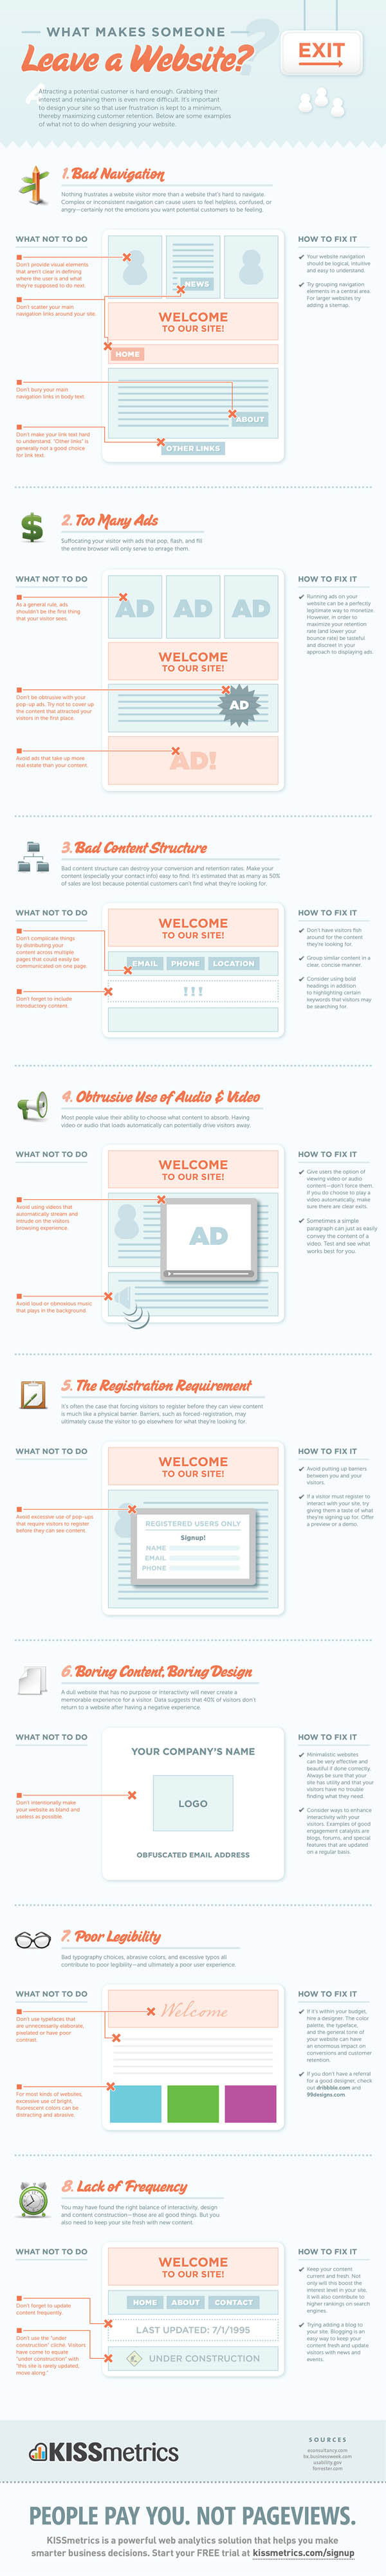 What Makes visitor Leave Website What Makes Visitor Leave A Website? [Infographic]